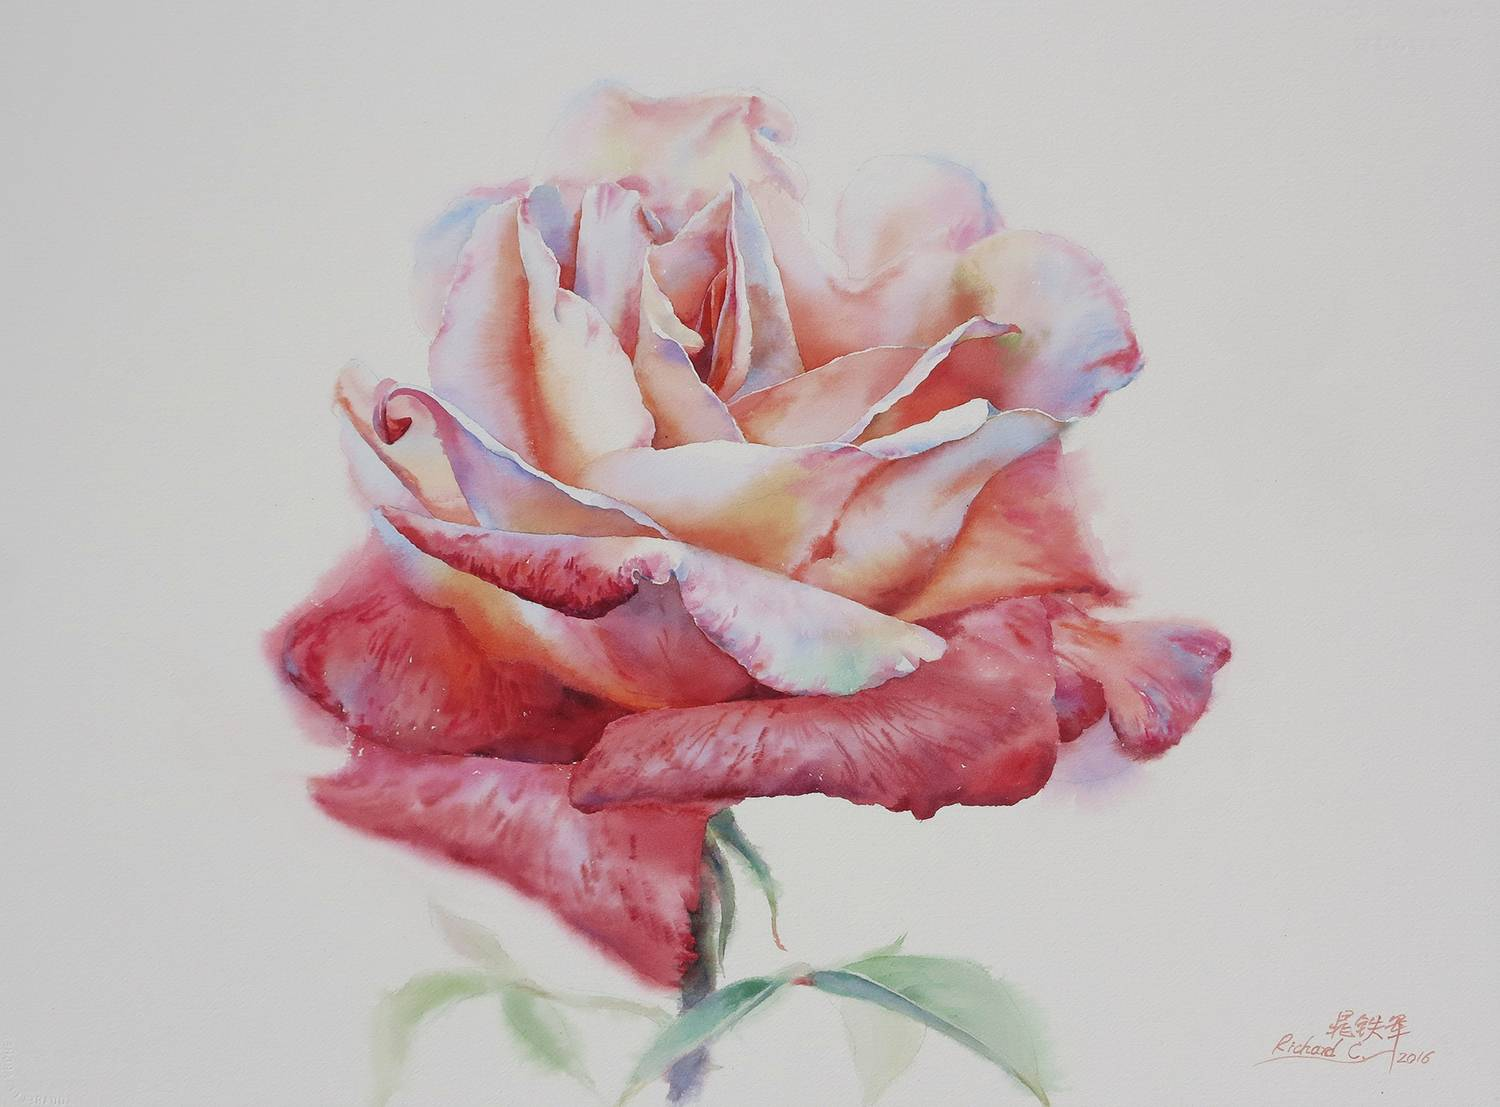 Chinese and Australia Artist Chao Tiejun's WorkTwo Tone Rose Watercolor Painting Wall Art Posters Picture Canvas Painting